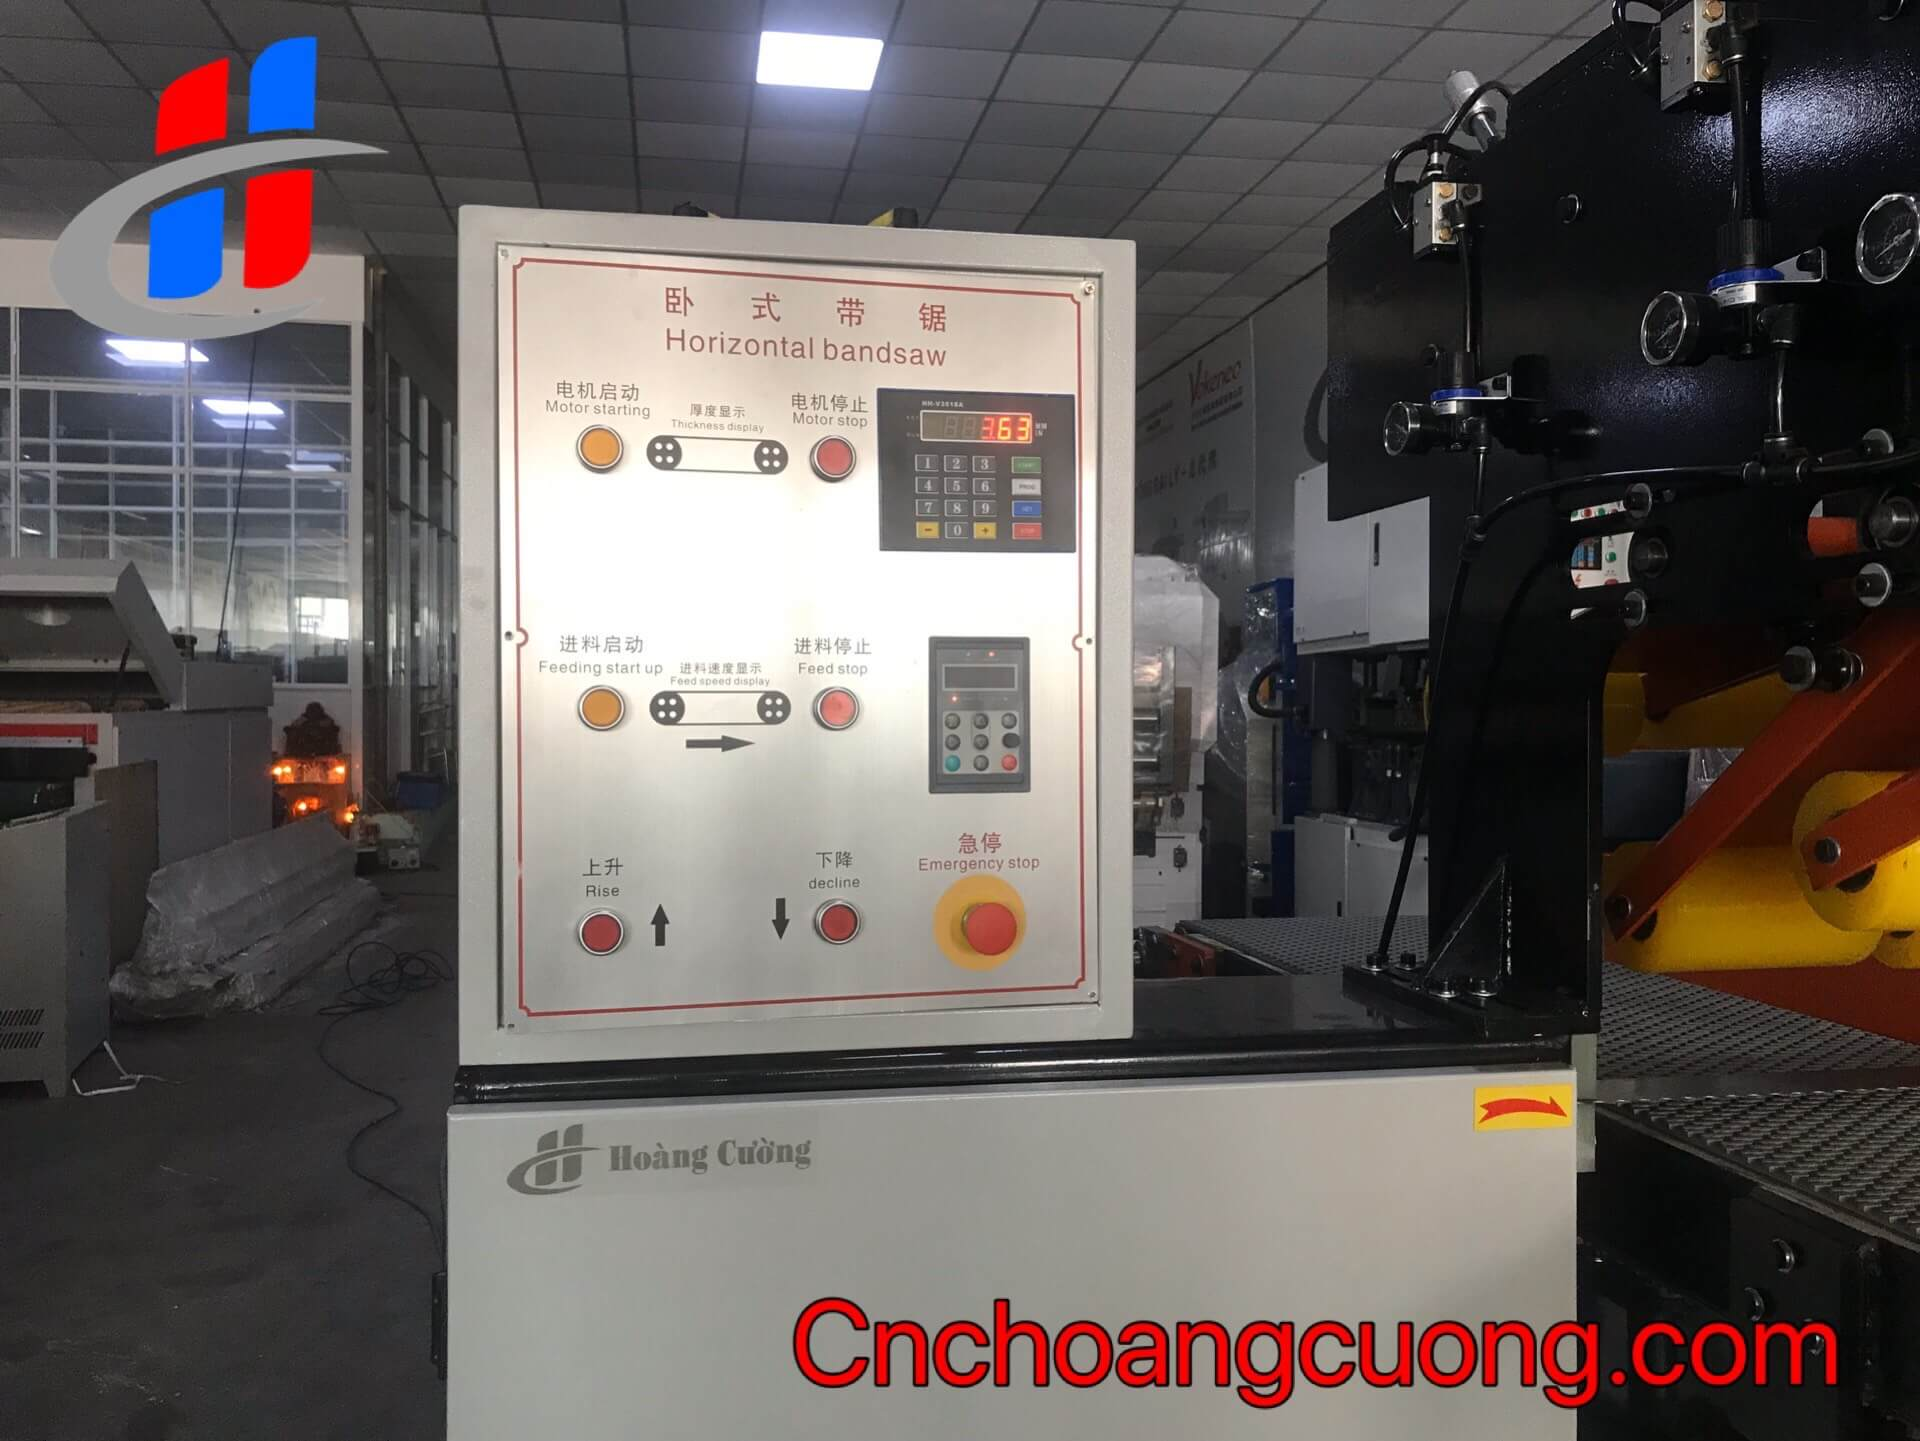 https://cnchoangcuong.com/?post_type=product&p=1619&preview=true